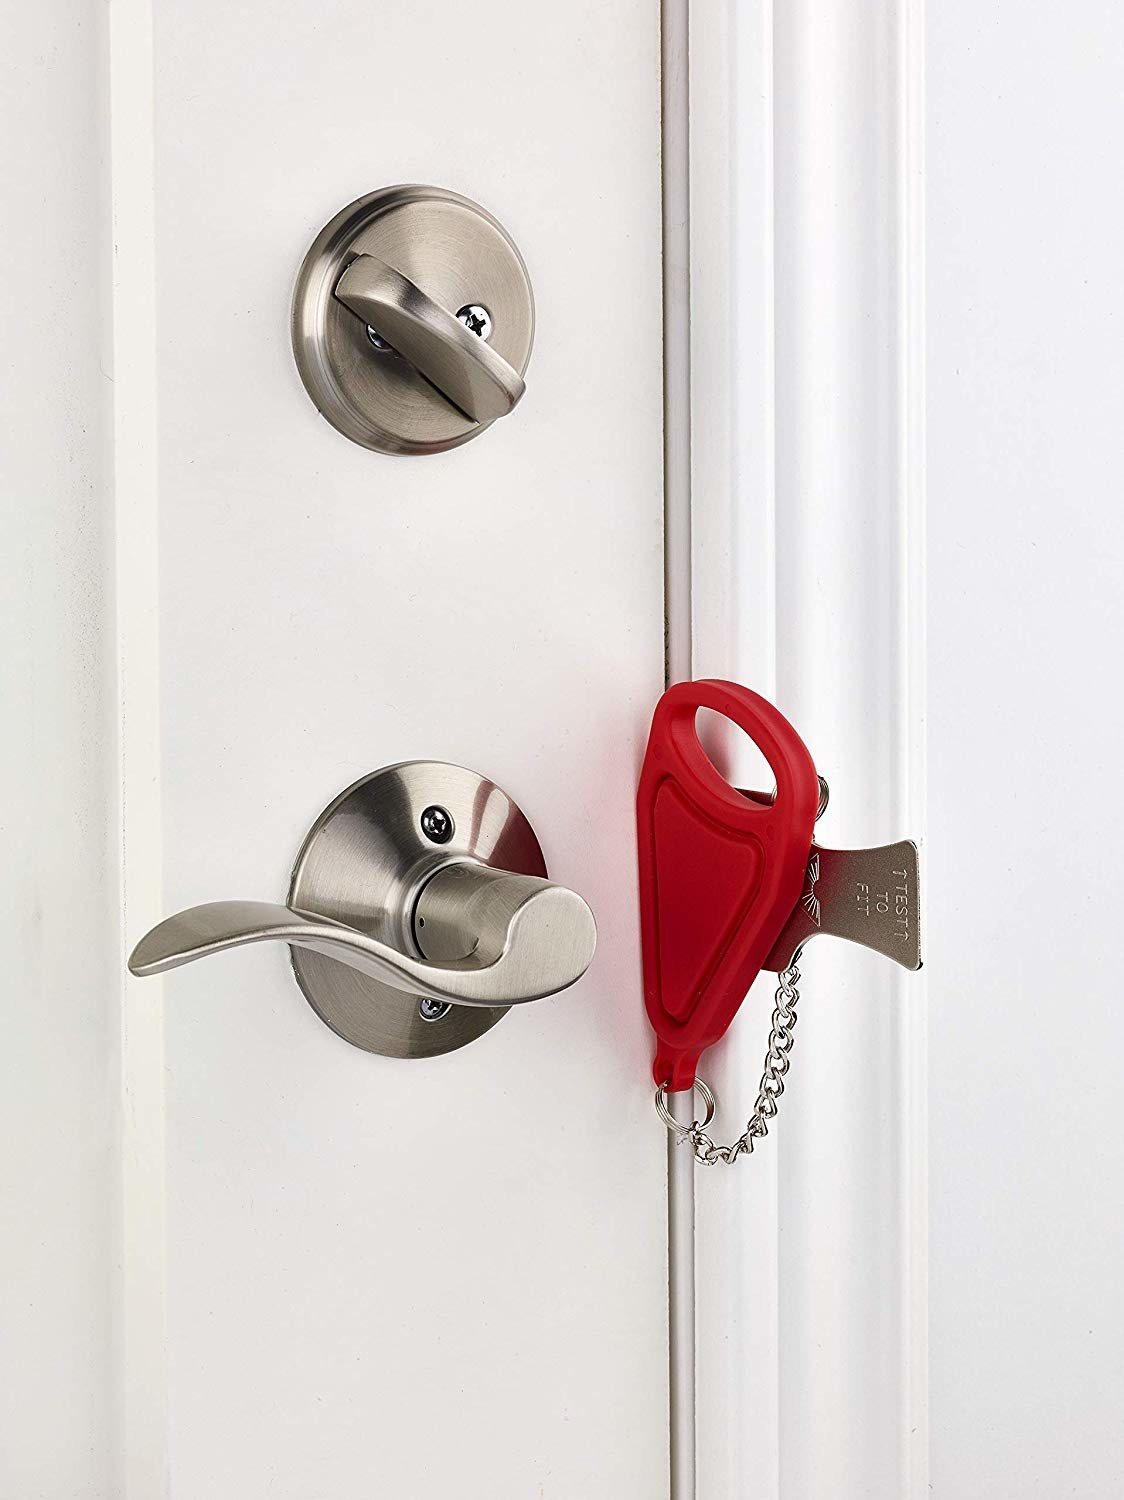 Thin red lock and metal addition slid into doorframe